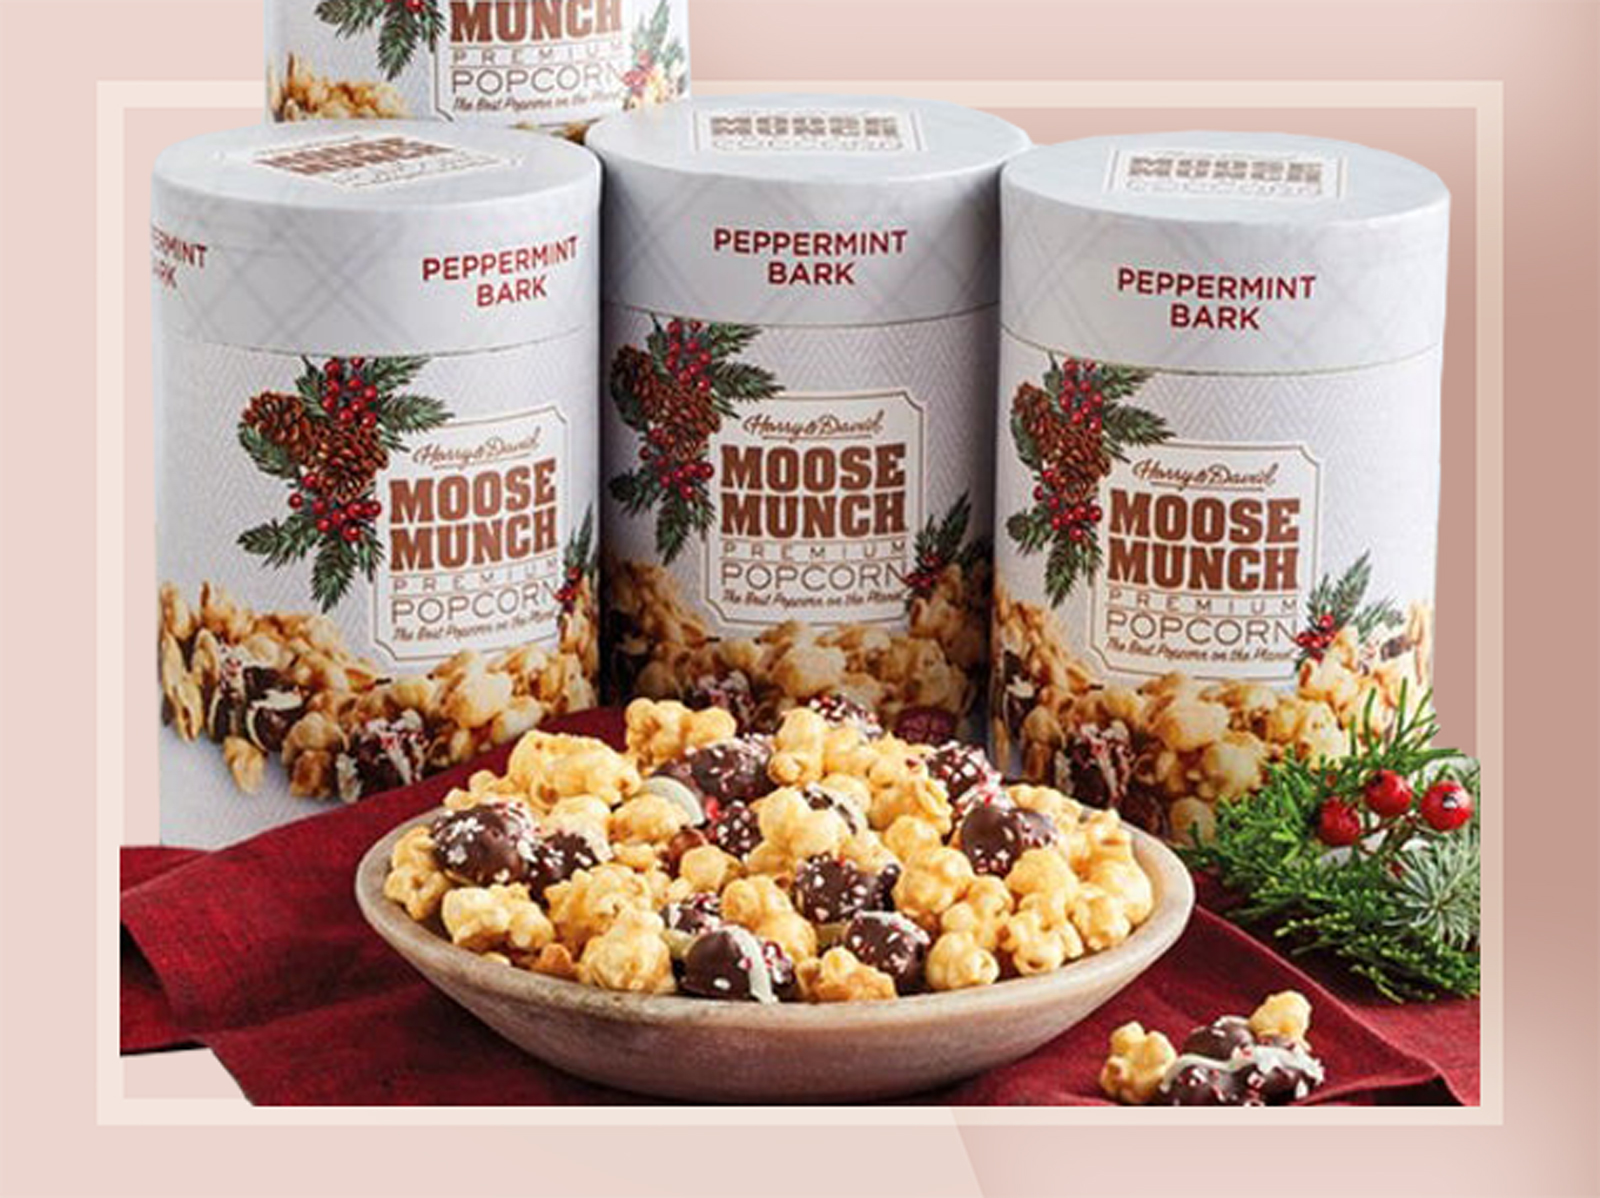 Harry & David Moose Munch Peppermint